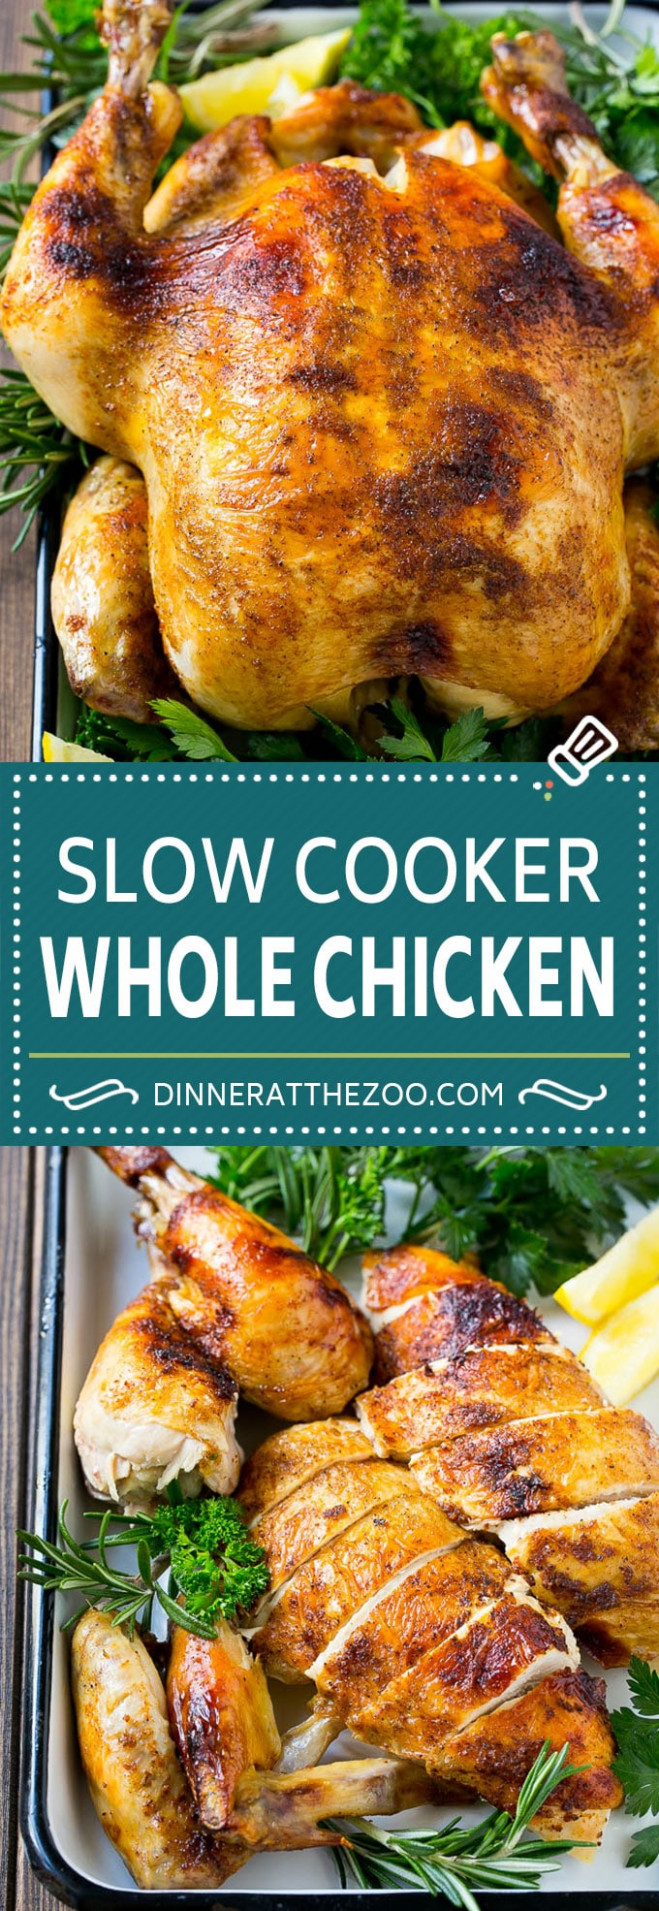 Slow Cooker Whole Chicken - recipes for whole chicken